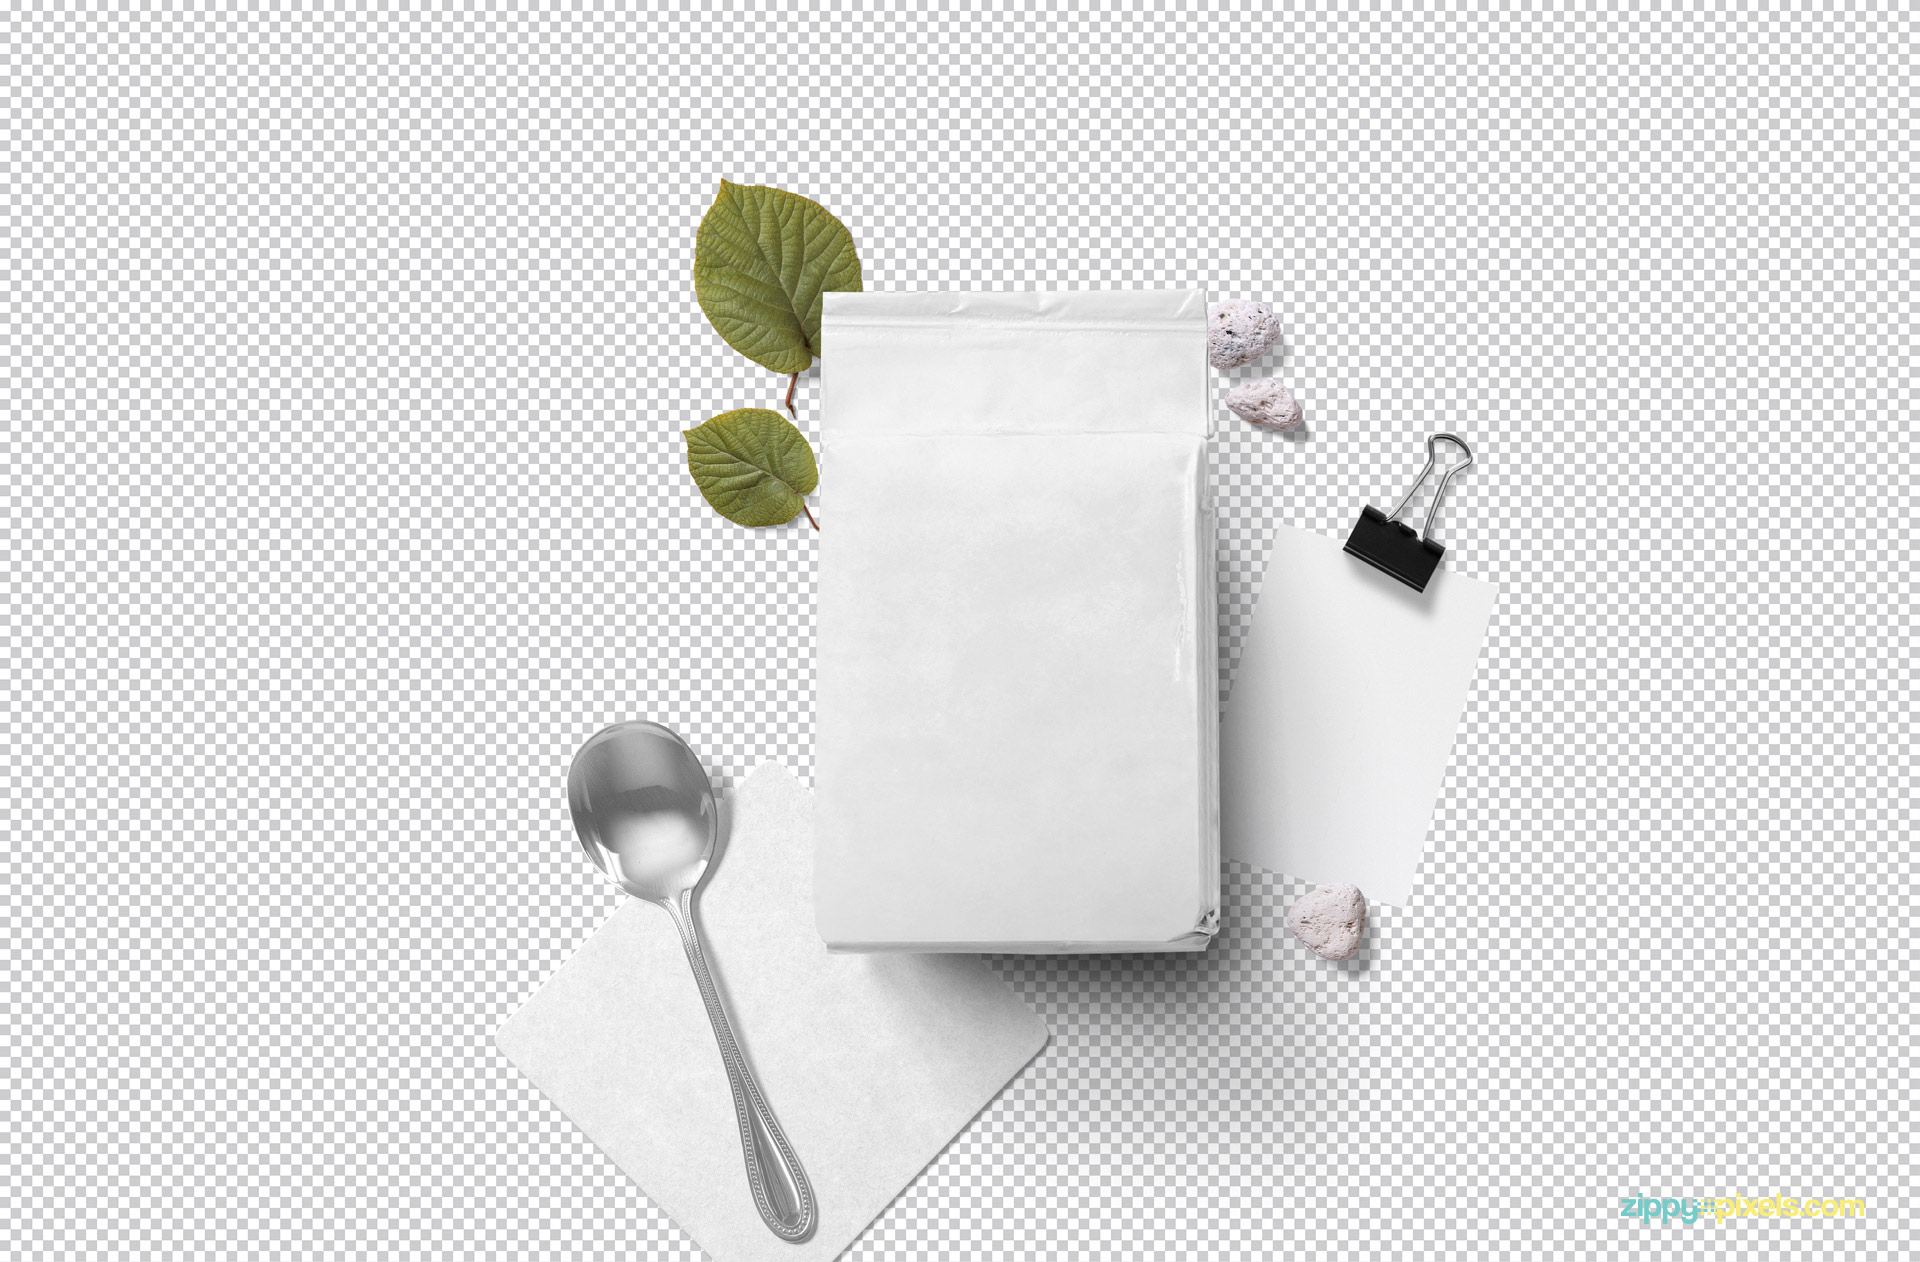 Use Photoshop to add your designs in this plain pouch mockup PSD.